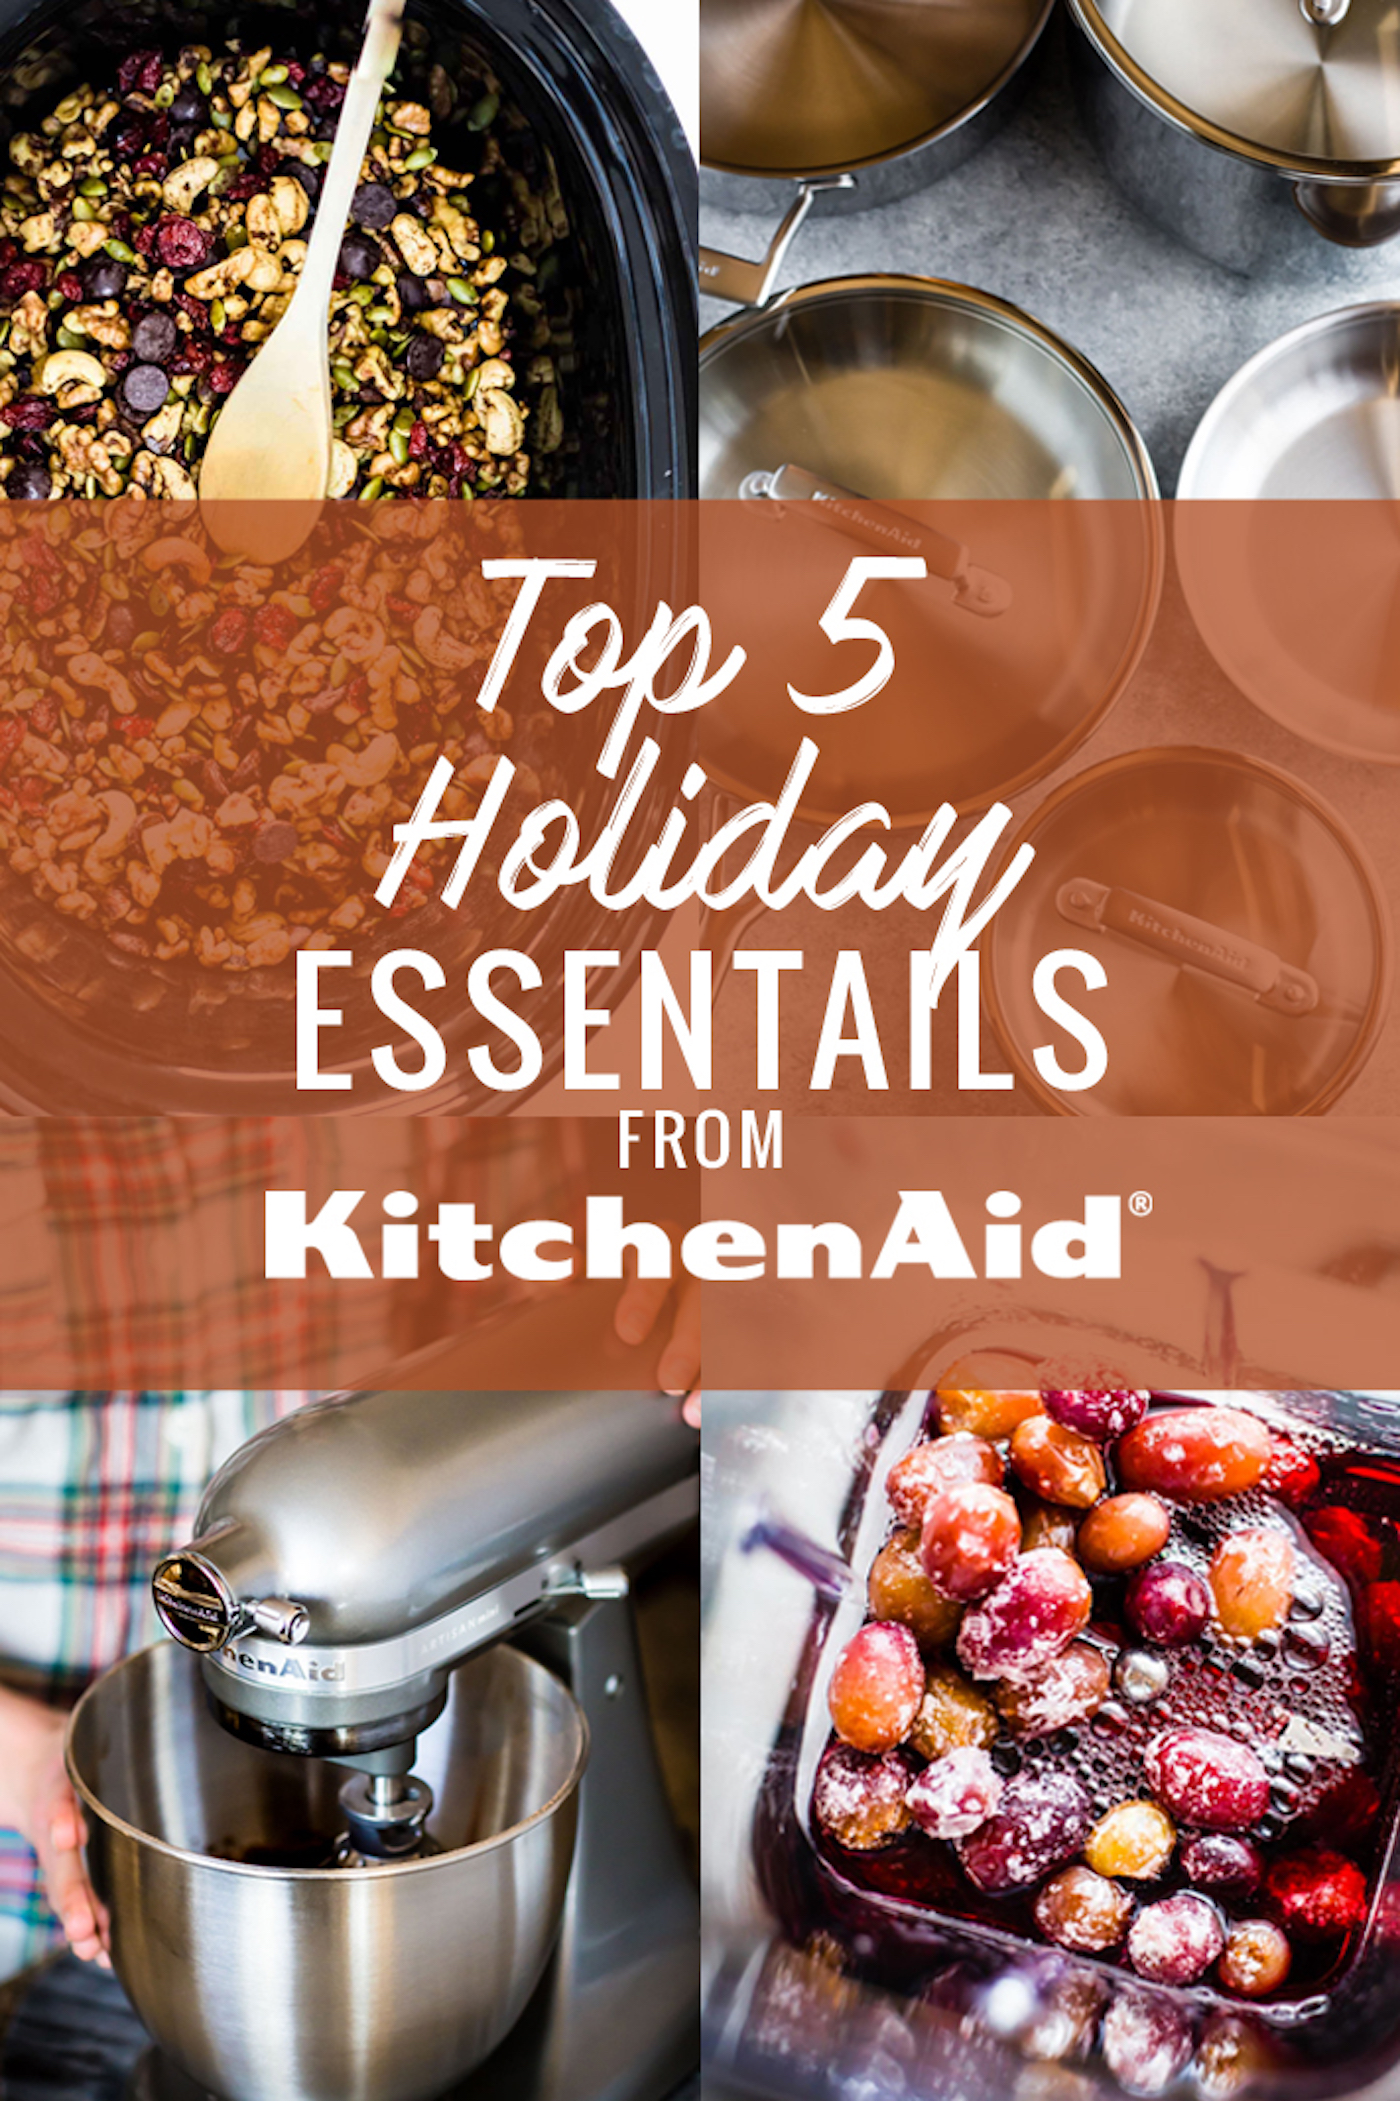 Holiday Kitchen Essentials that will make the entertaining process a breeze! Yes, now is the perfect time to upgrade your kitchen for the holidays! Since the Holiday countdown has officially begun, I thought I'd share my favorite 5 holiday kitchen essentials rom KitchenAid. Because the right equipment in the kitchen makes all of the difference while you prep for a delicious holiday feast. So come join me in my kitchen and check out these tools that are not only essential for the holidays, but for ANYTIME of year! Gluten Free Recipe ideas and suggestions included for each. www.cottercrunch.com